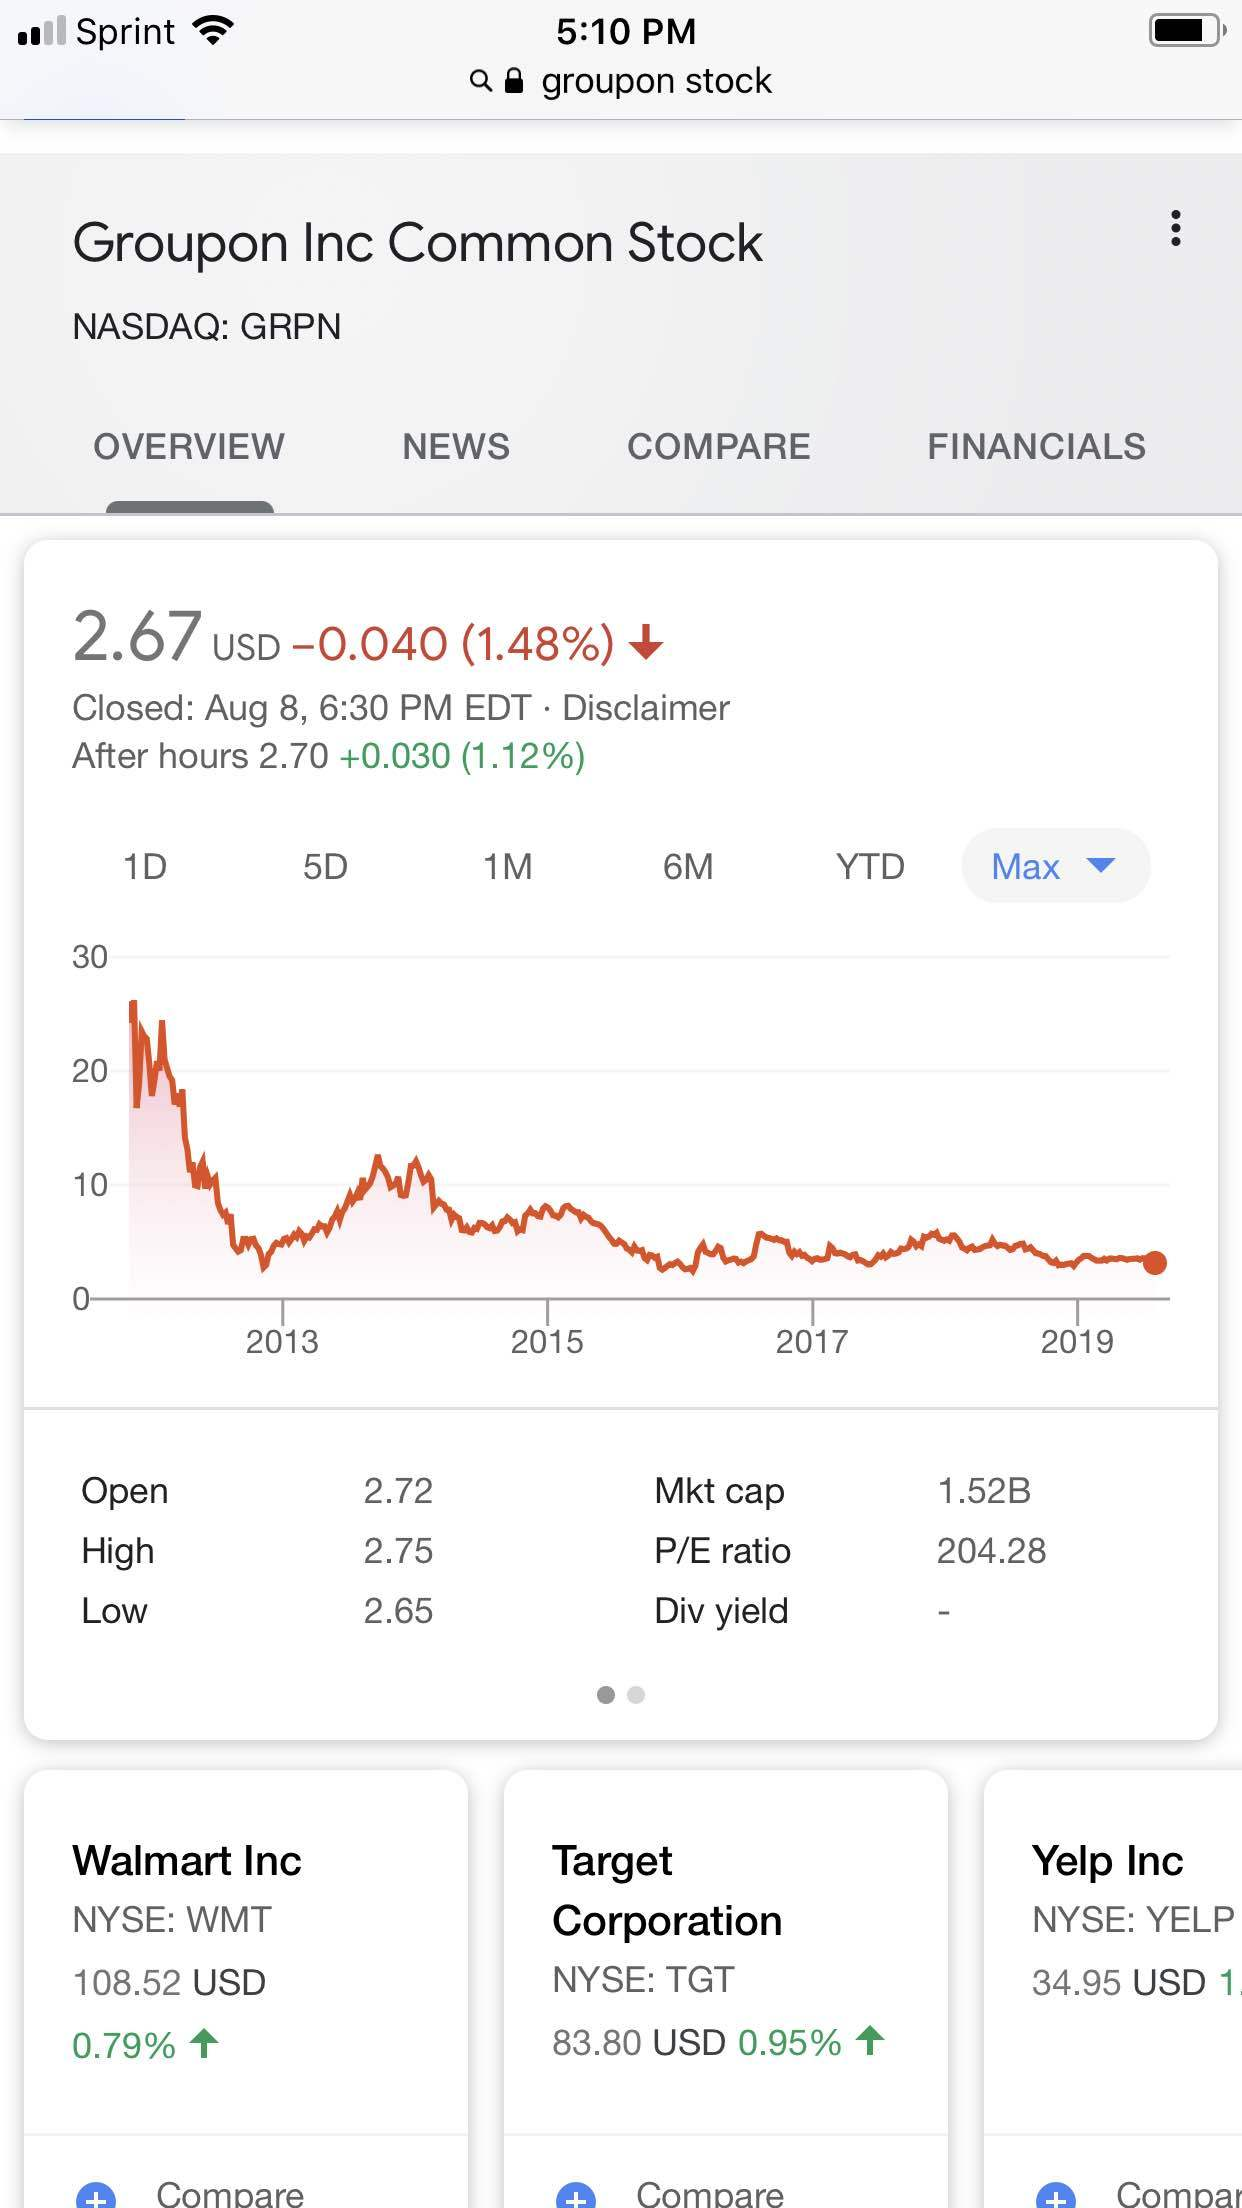 press f to pay respects for groupon stock